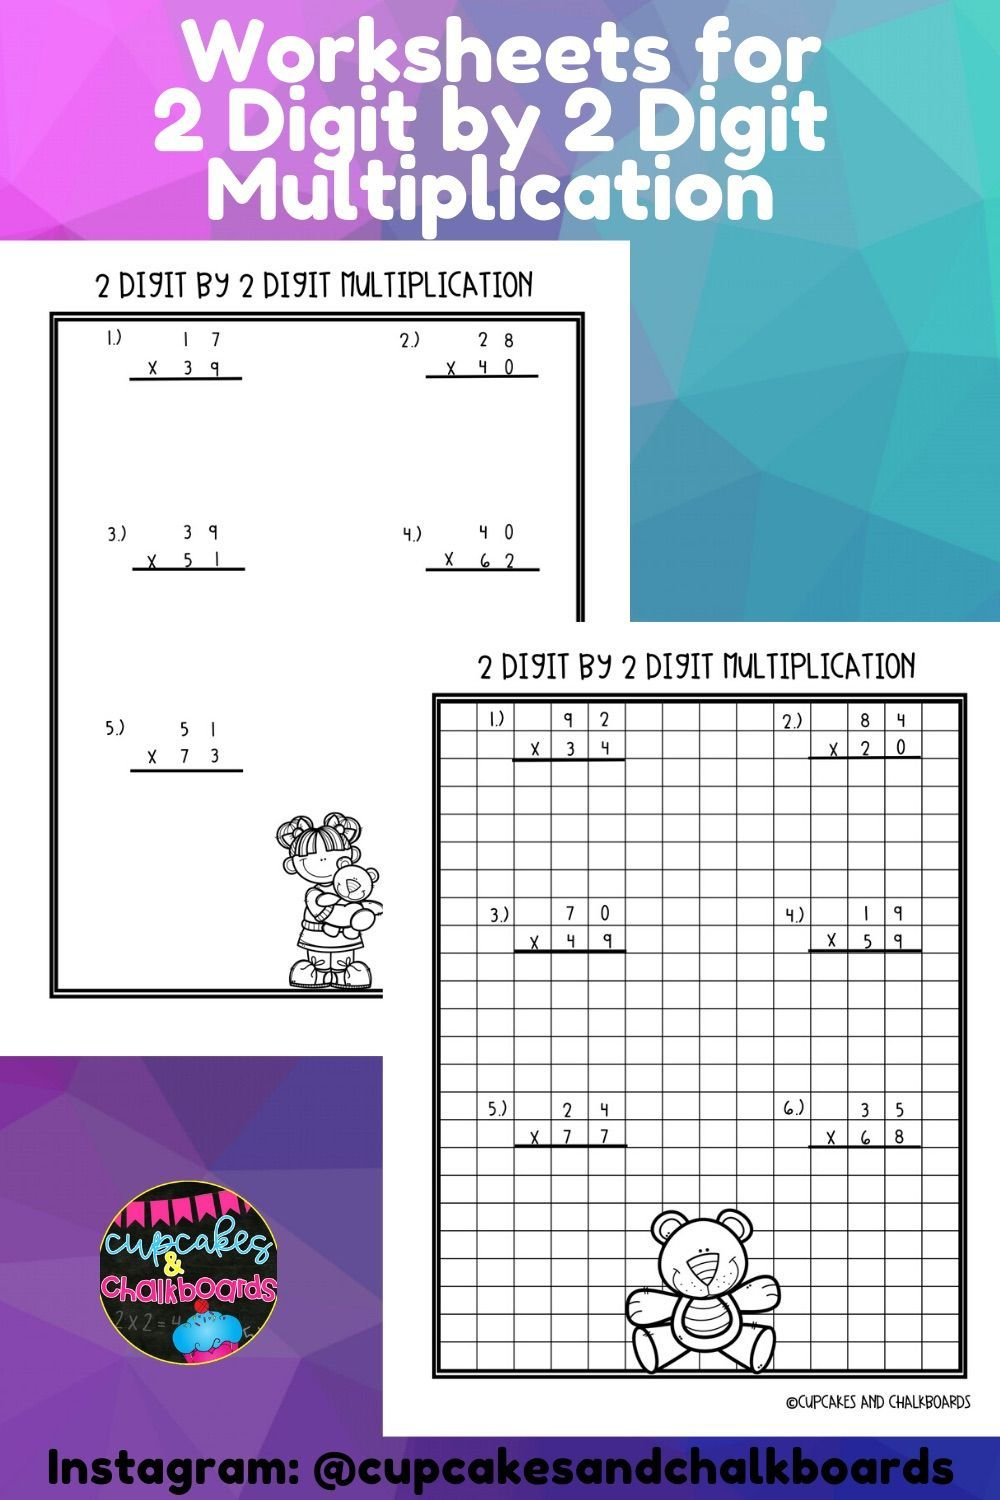 2 Digit by 2 Digit Multiplication Worksheets Math lesson